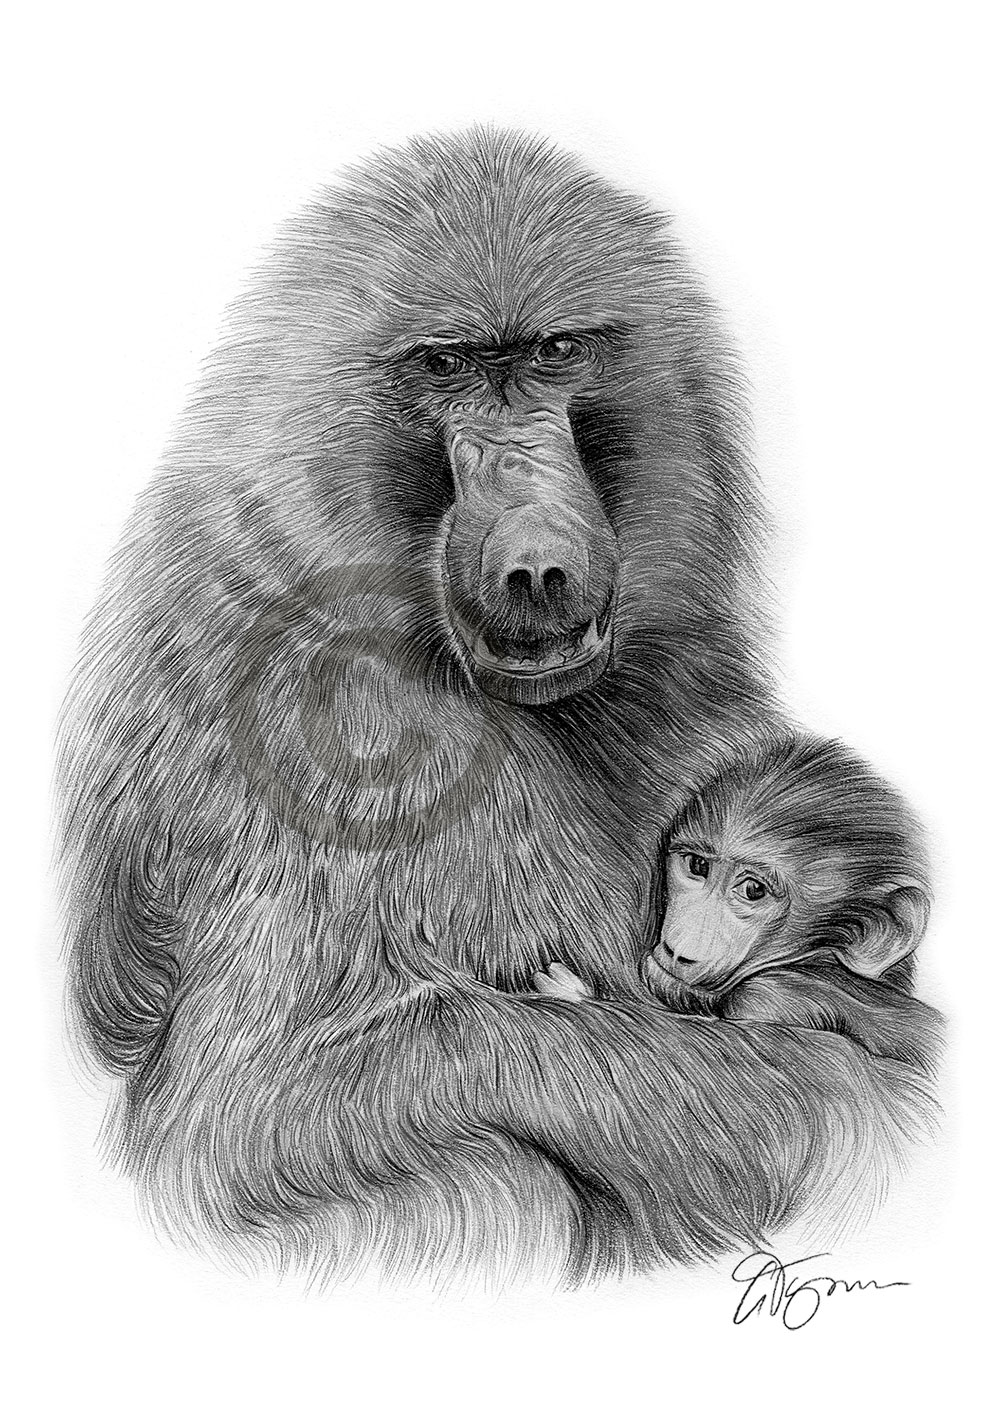 Pencil drawing of a baboon by artist Gary Tymon